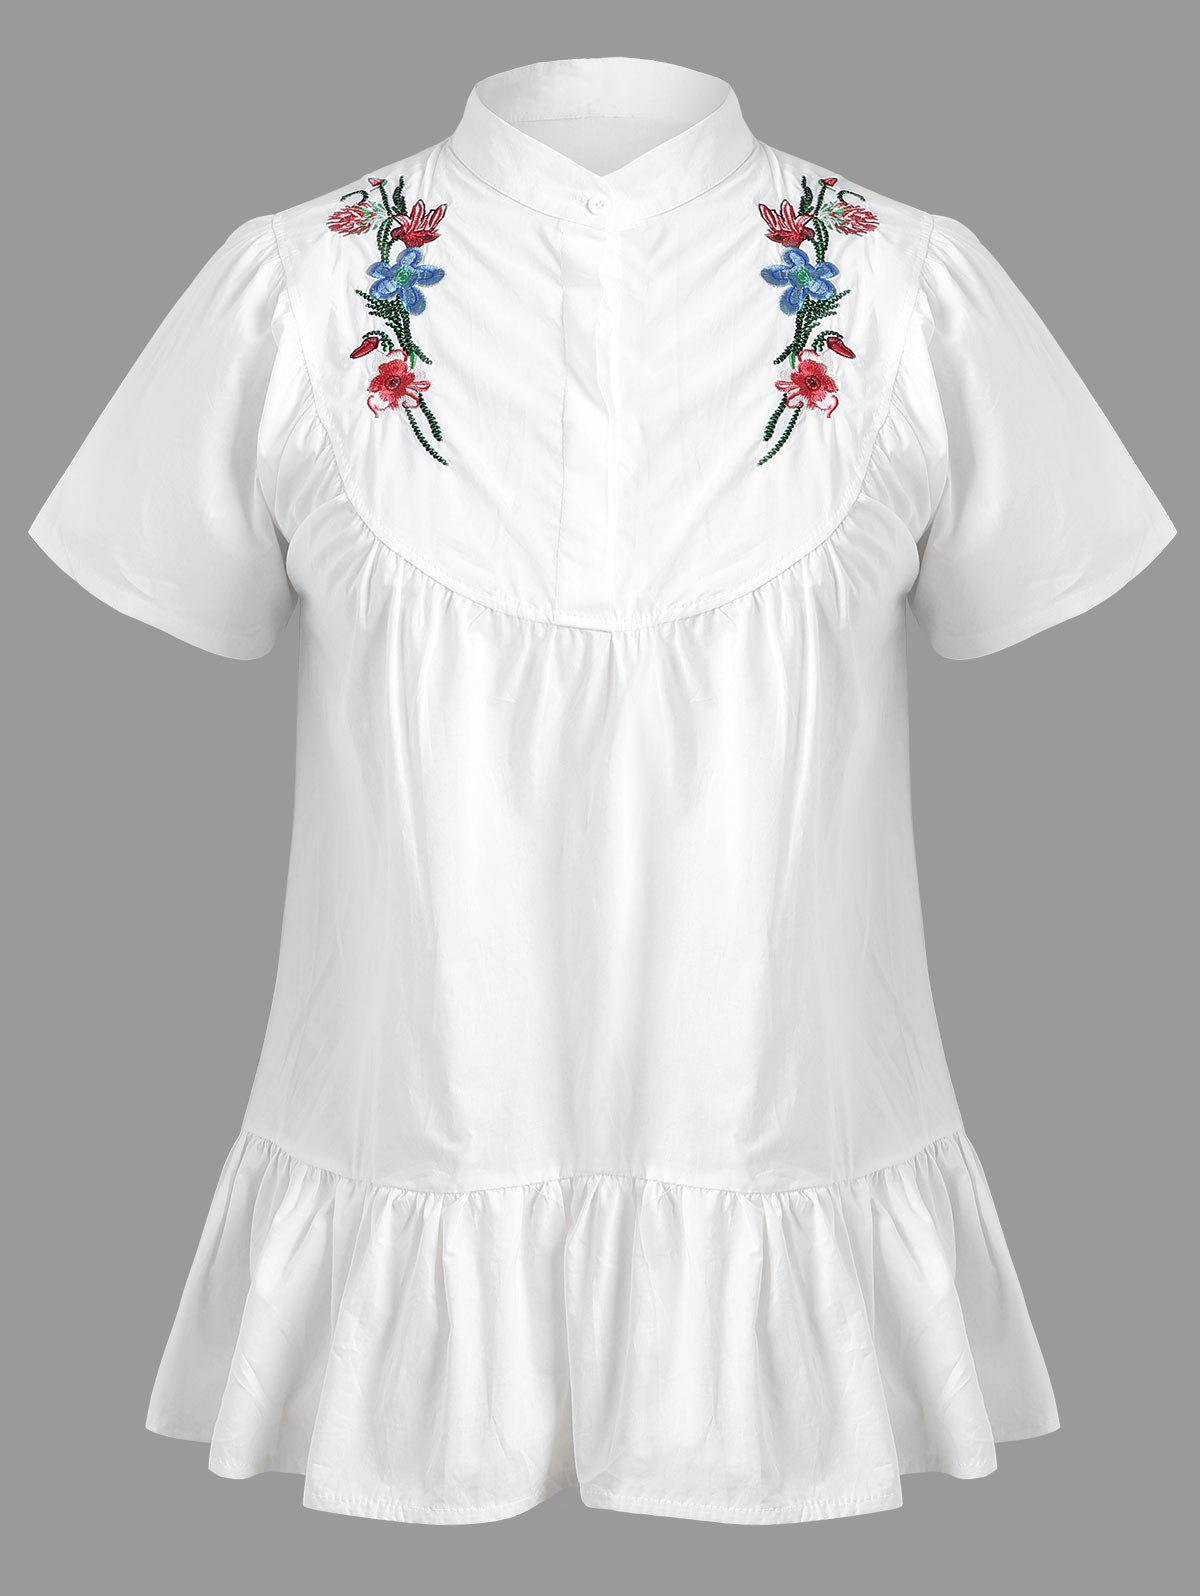 Floral Embroidered Short Sleeve Plus Size Top floral embroidered short sleeve dress